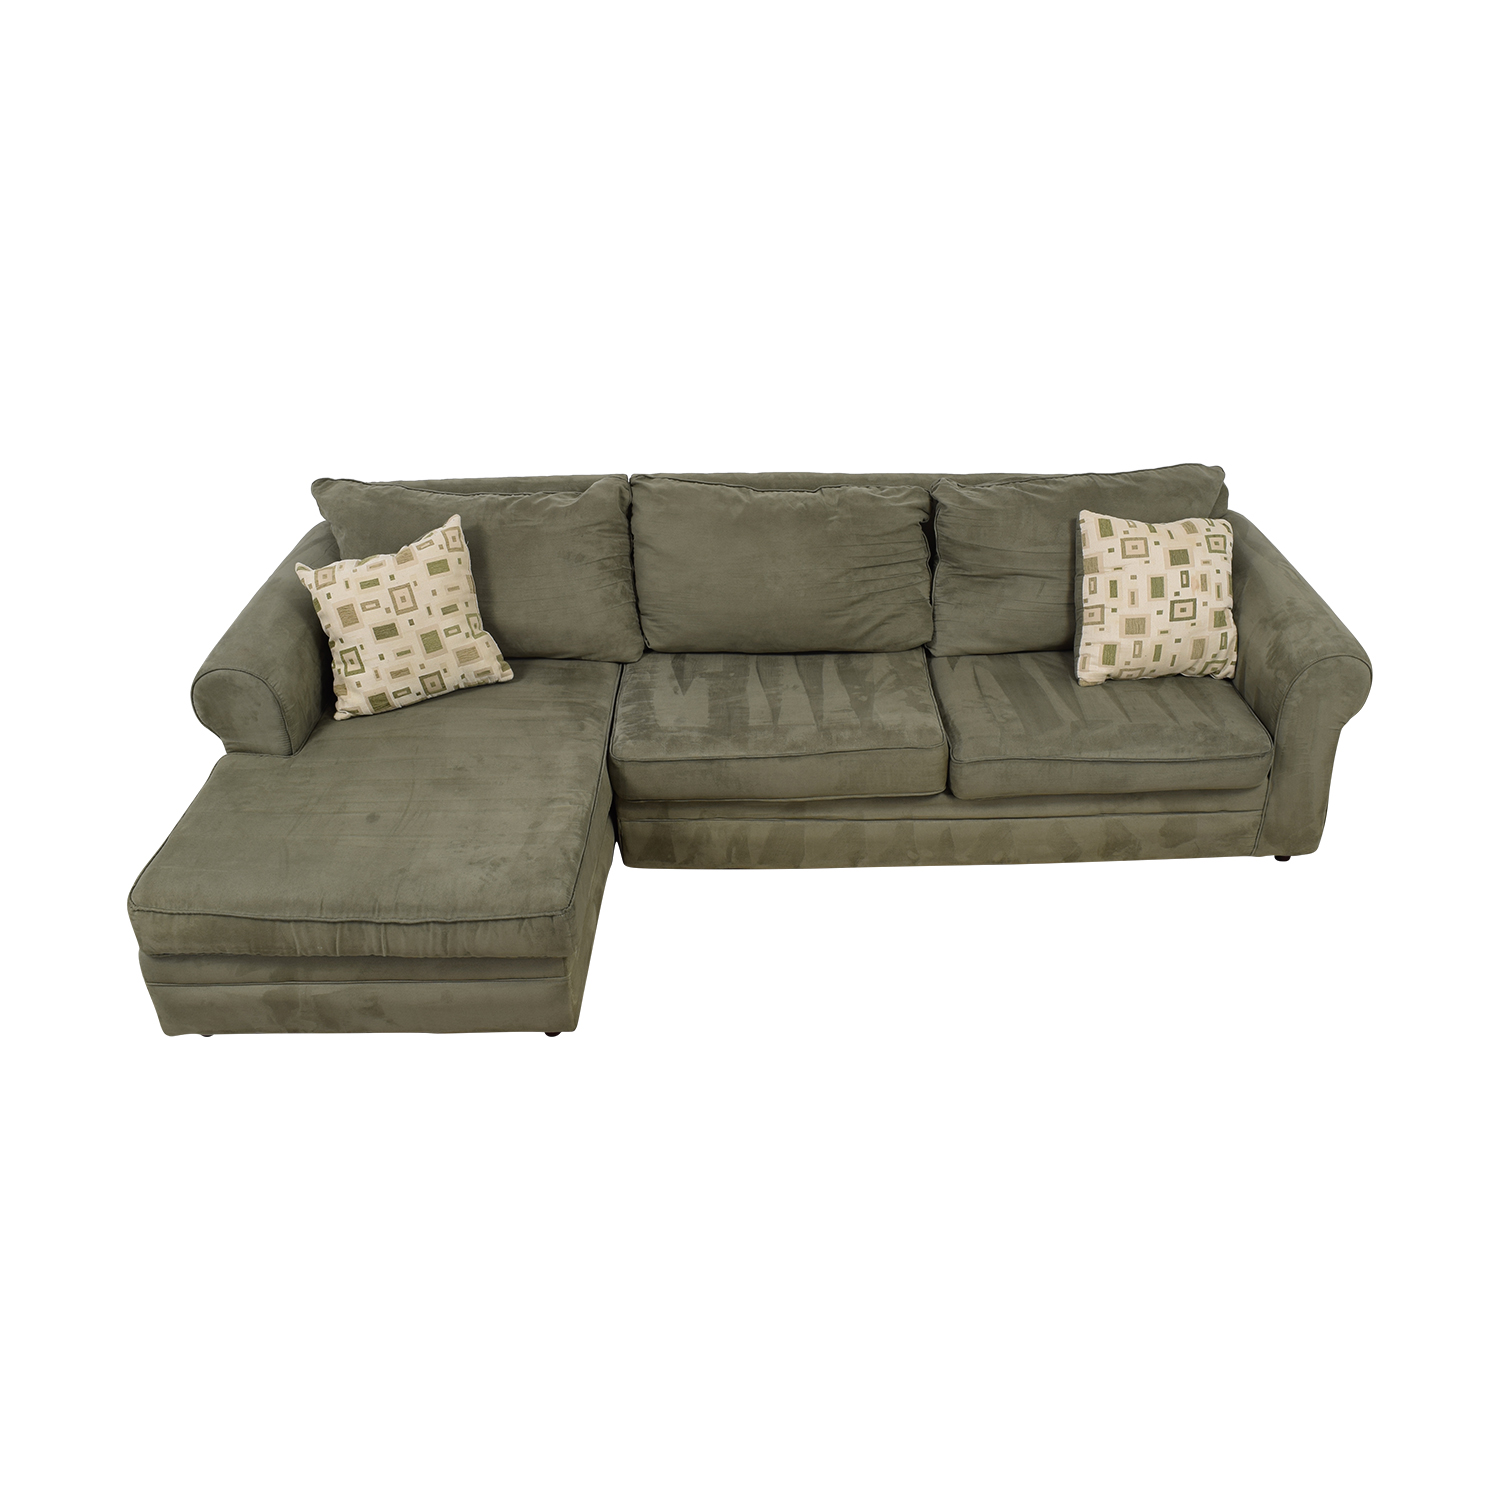 March Furniture March Furniture Green Left Arm Chaise Sectional price